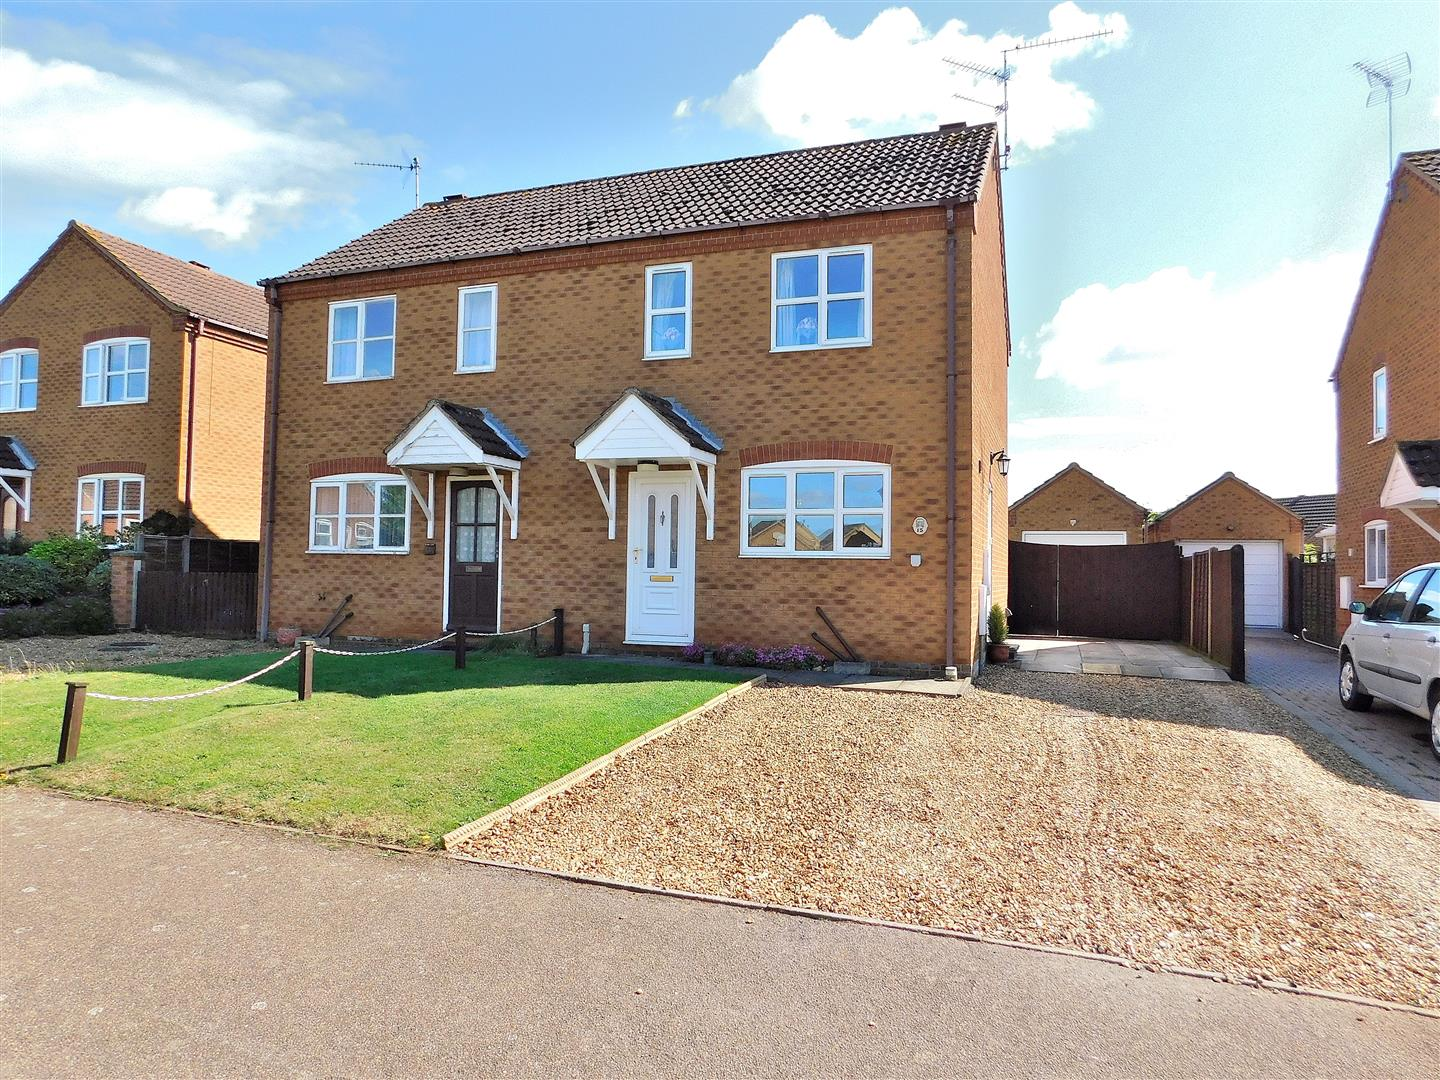 2 bed semi-detached house for sale in King's Lynn, PE31 6XX - Property Image 1